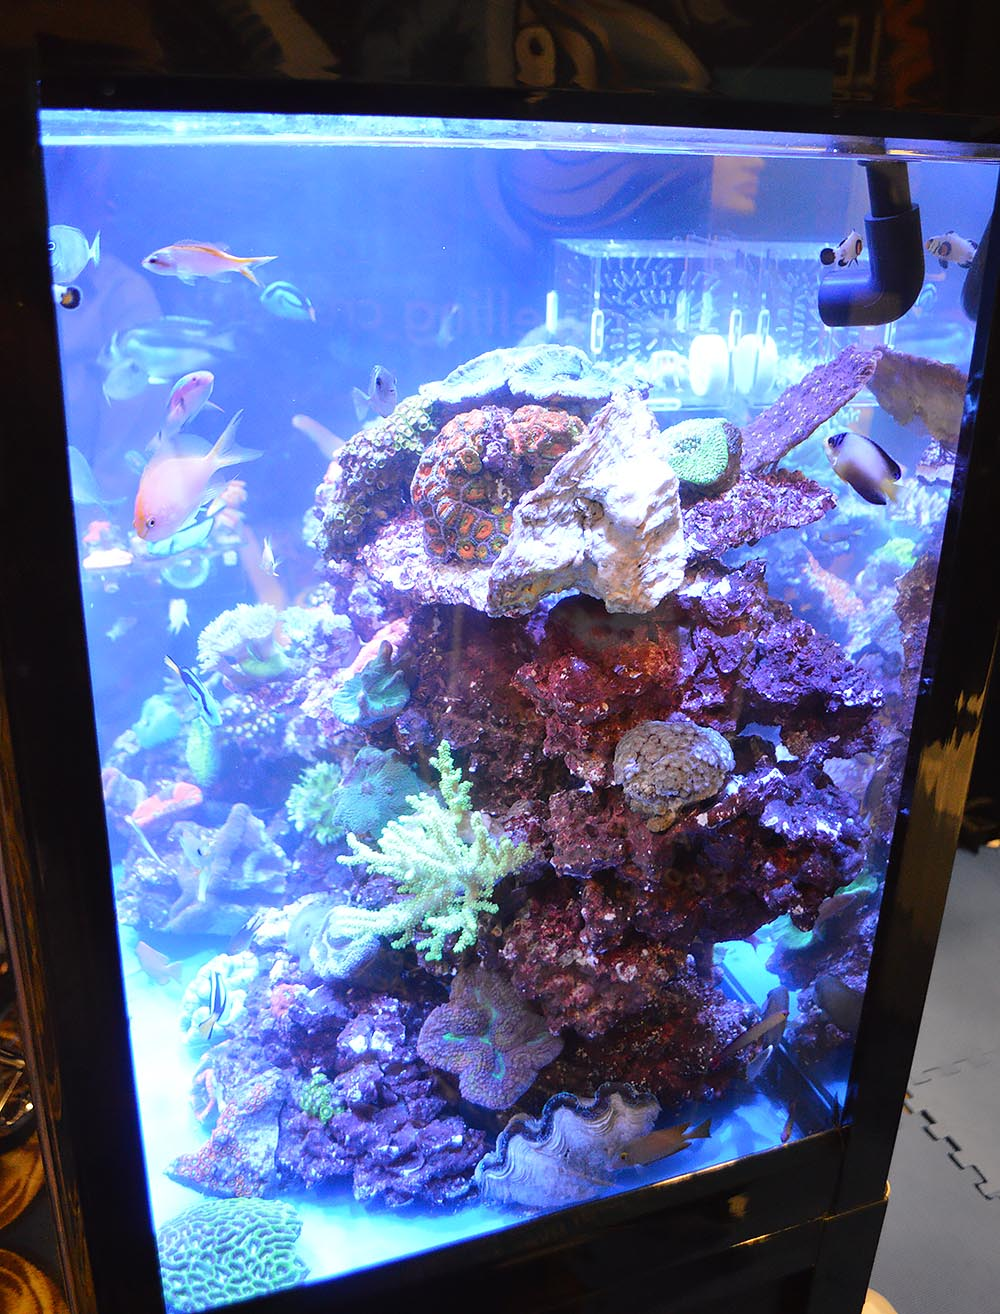 A look at SDC's reef display from the side.